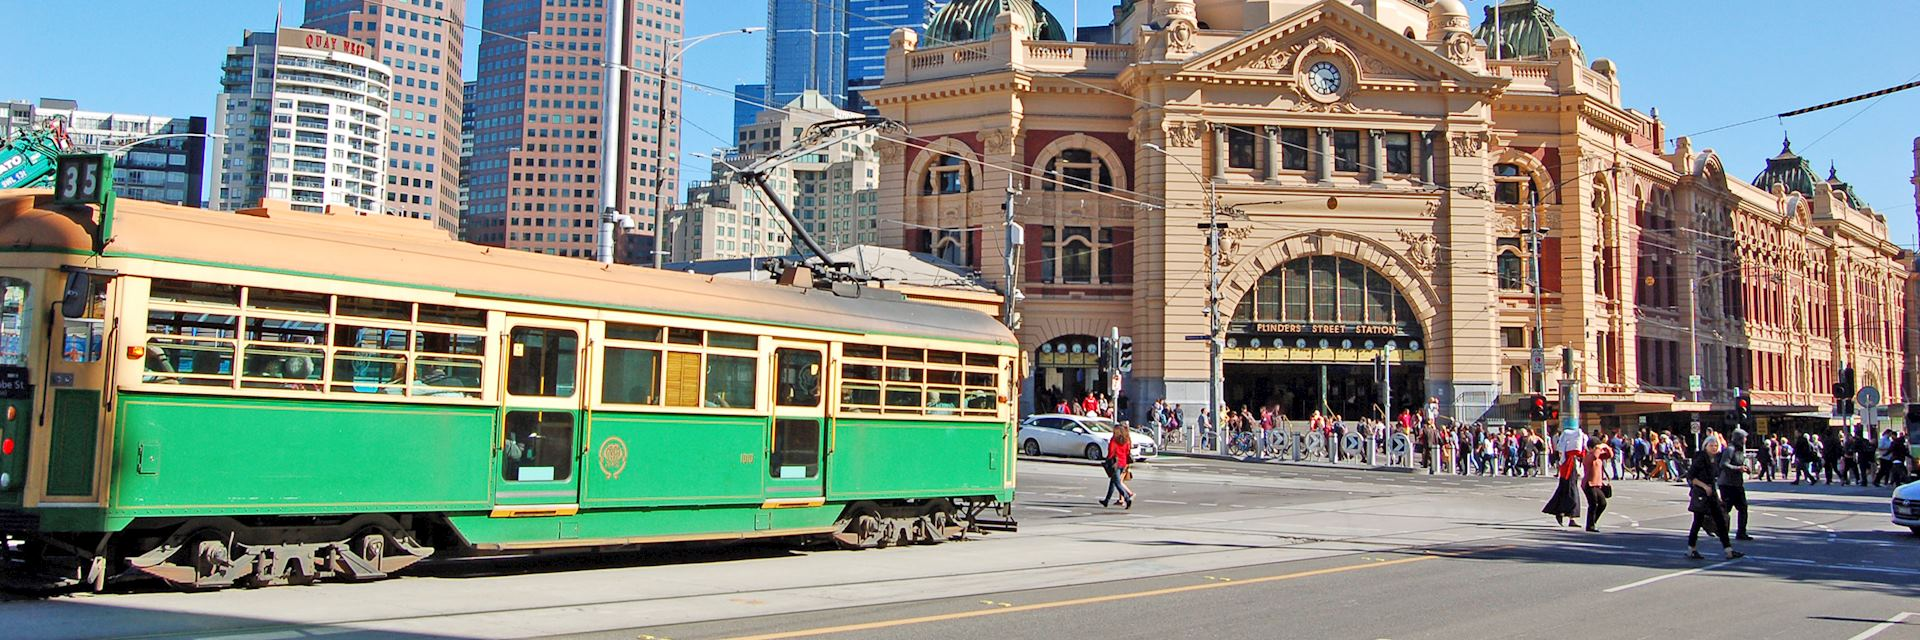 Tram at Flinders Street Station, Melbourne